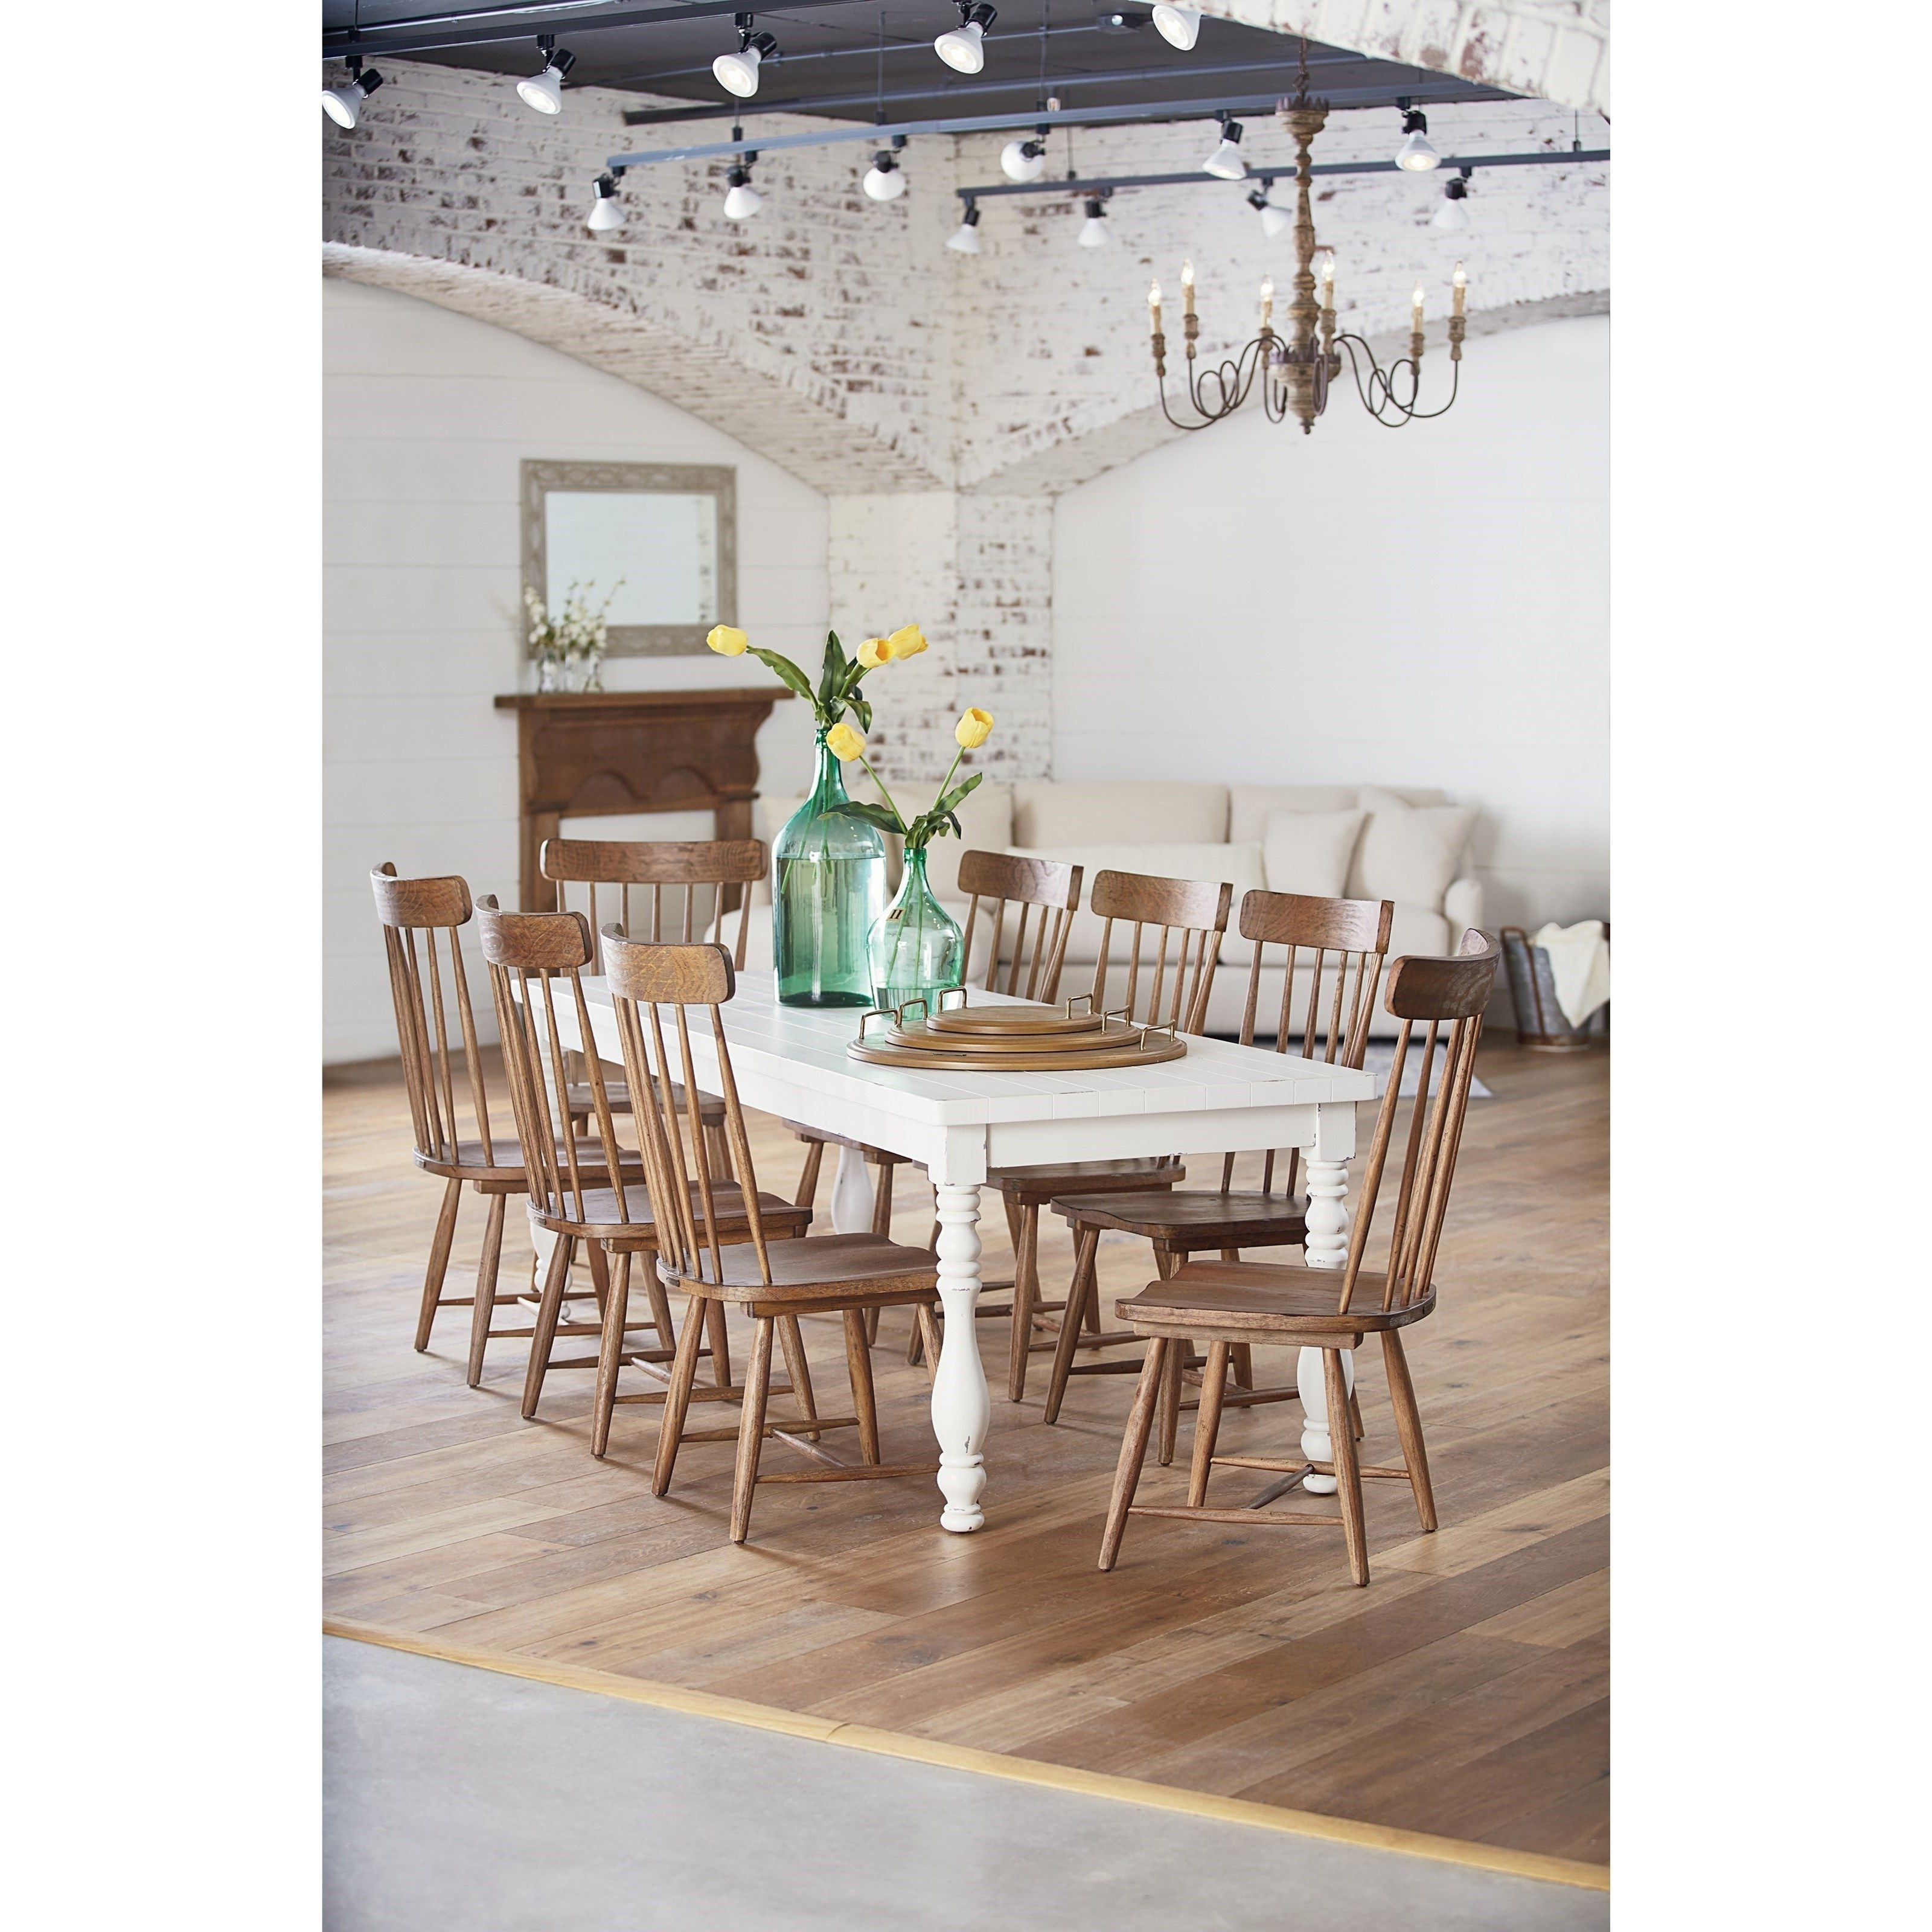 Fashionable Magnolia Home Shop Floor Dining Tables With Iron Trestle Pertaining To Magnolia Home Trestle Dining Table New Magnolia Home Iron Trestle (View 3 of 25)